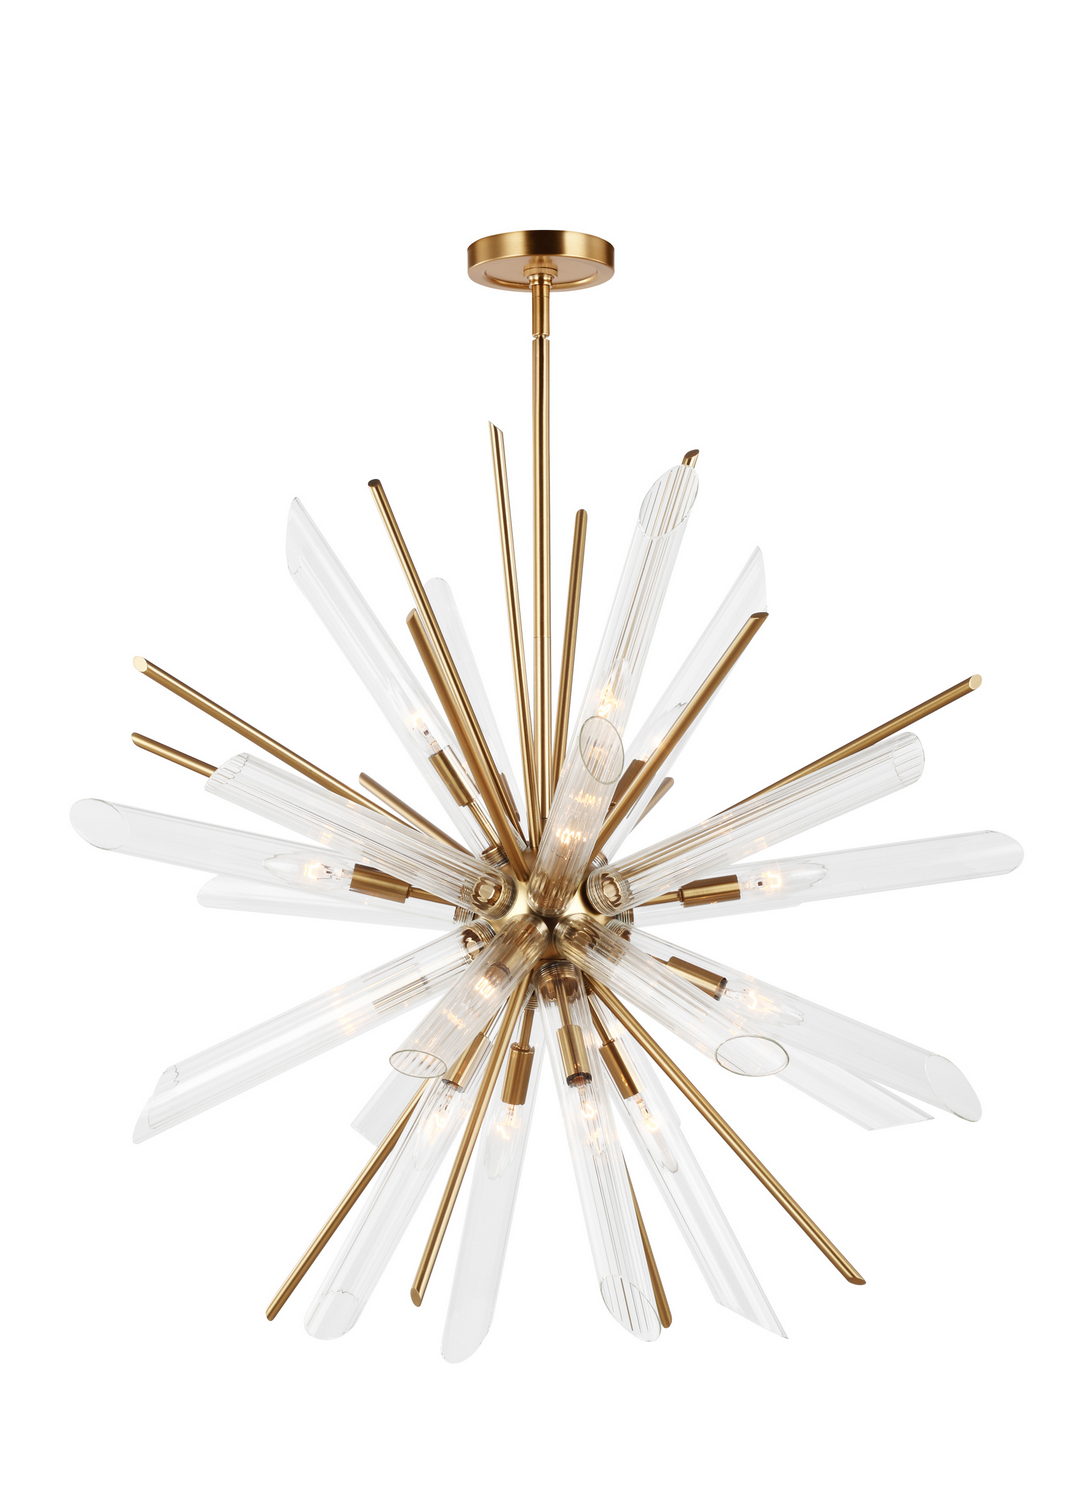 16 Light Chandelier from the Quorra collection by Feiss F318216BBS